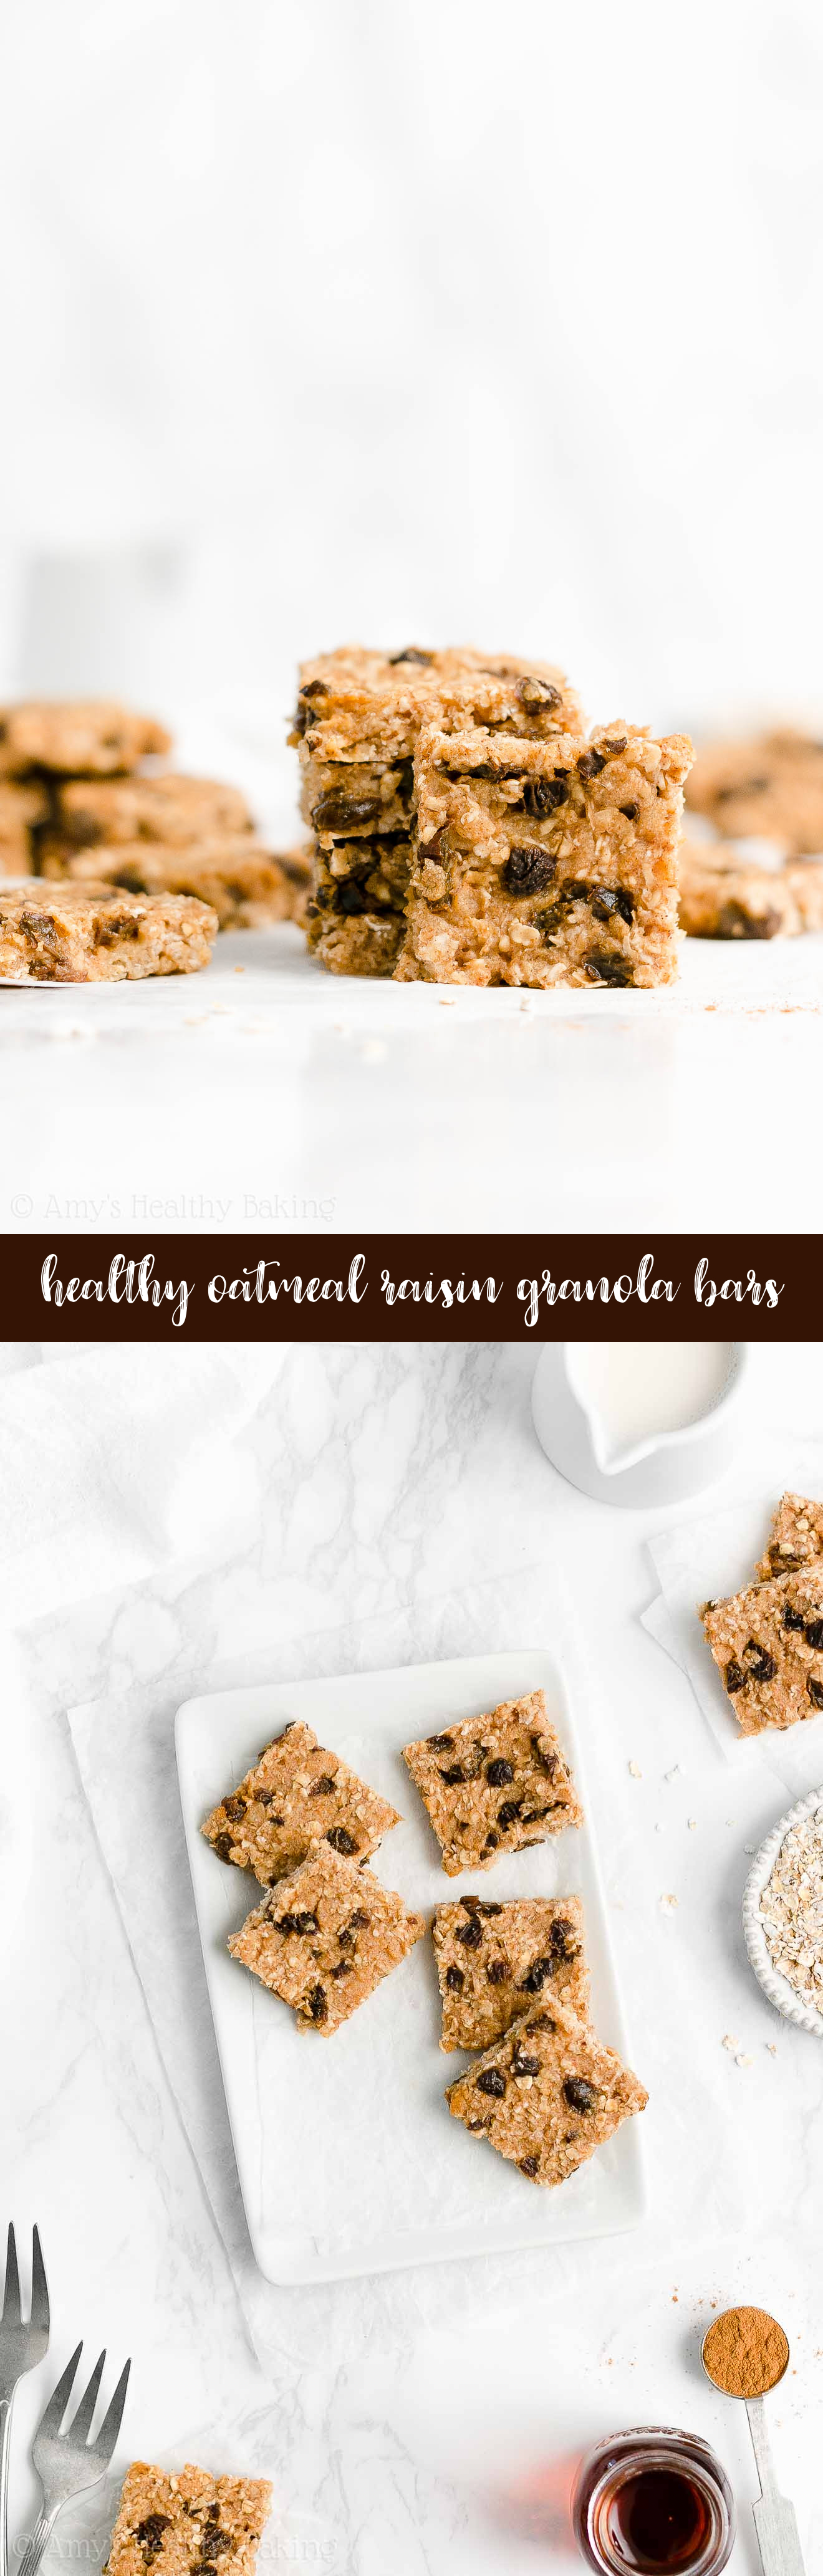 Best Ever Easy Healthy Homemade Low Fat Chewy Oatmeal Raisin Granola Bars